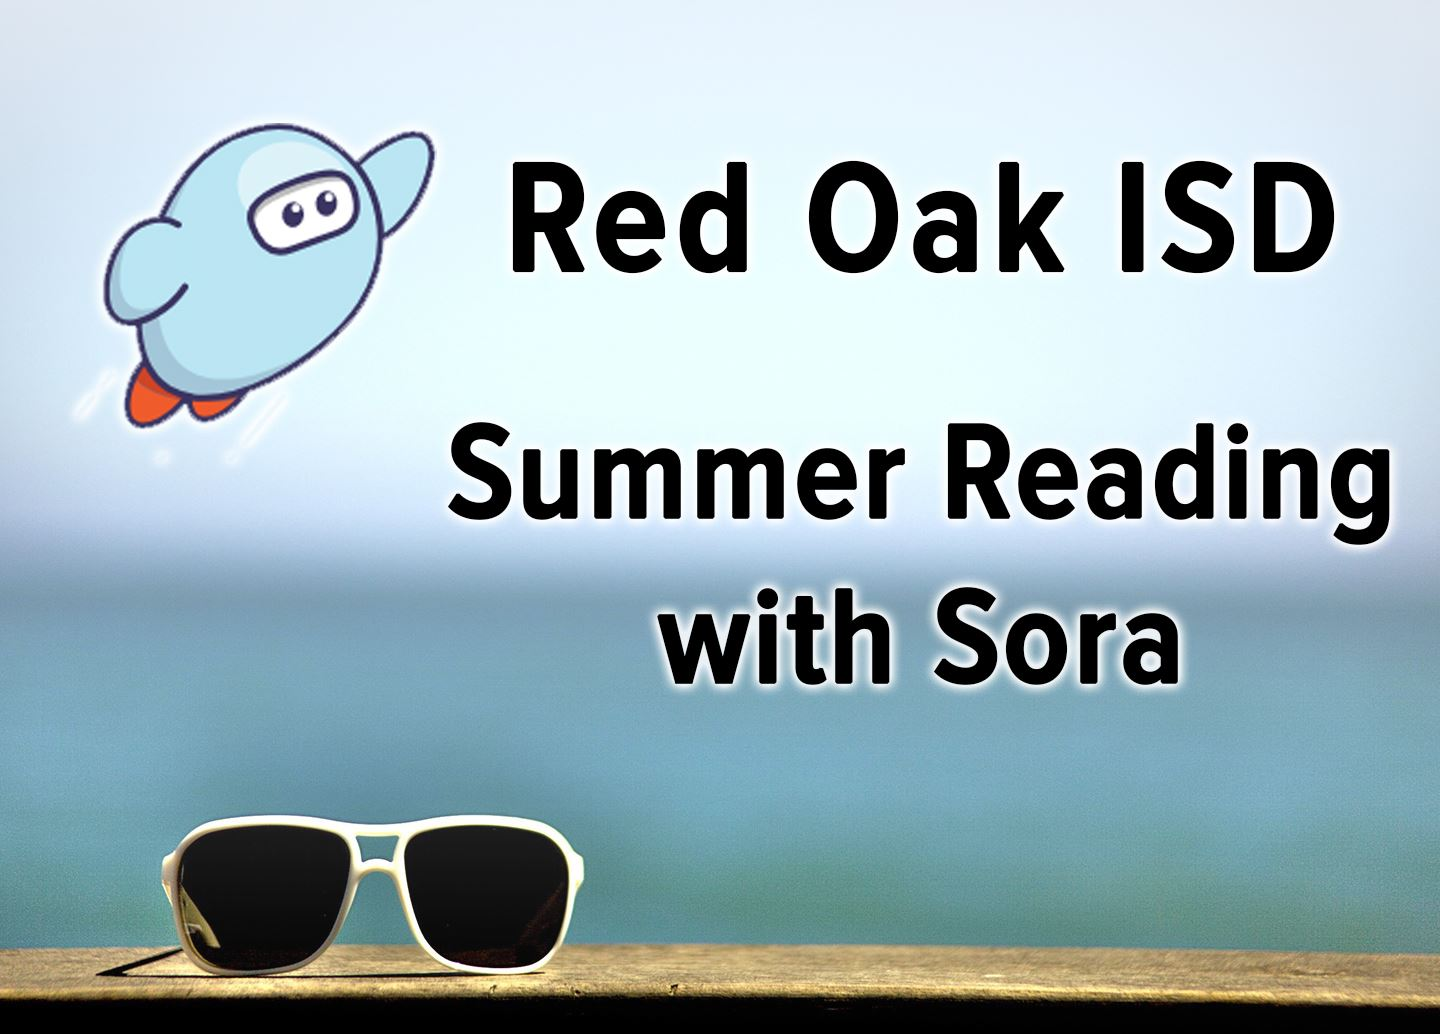 Red Oak ISD Summer Reading with Sora on beach background